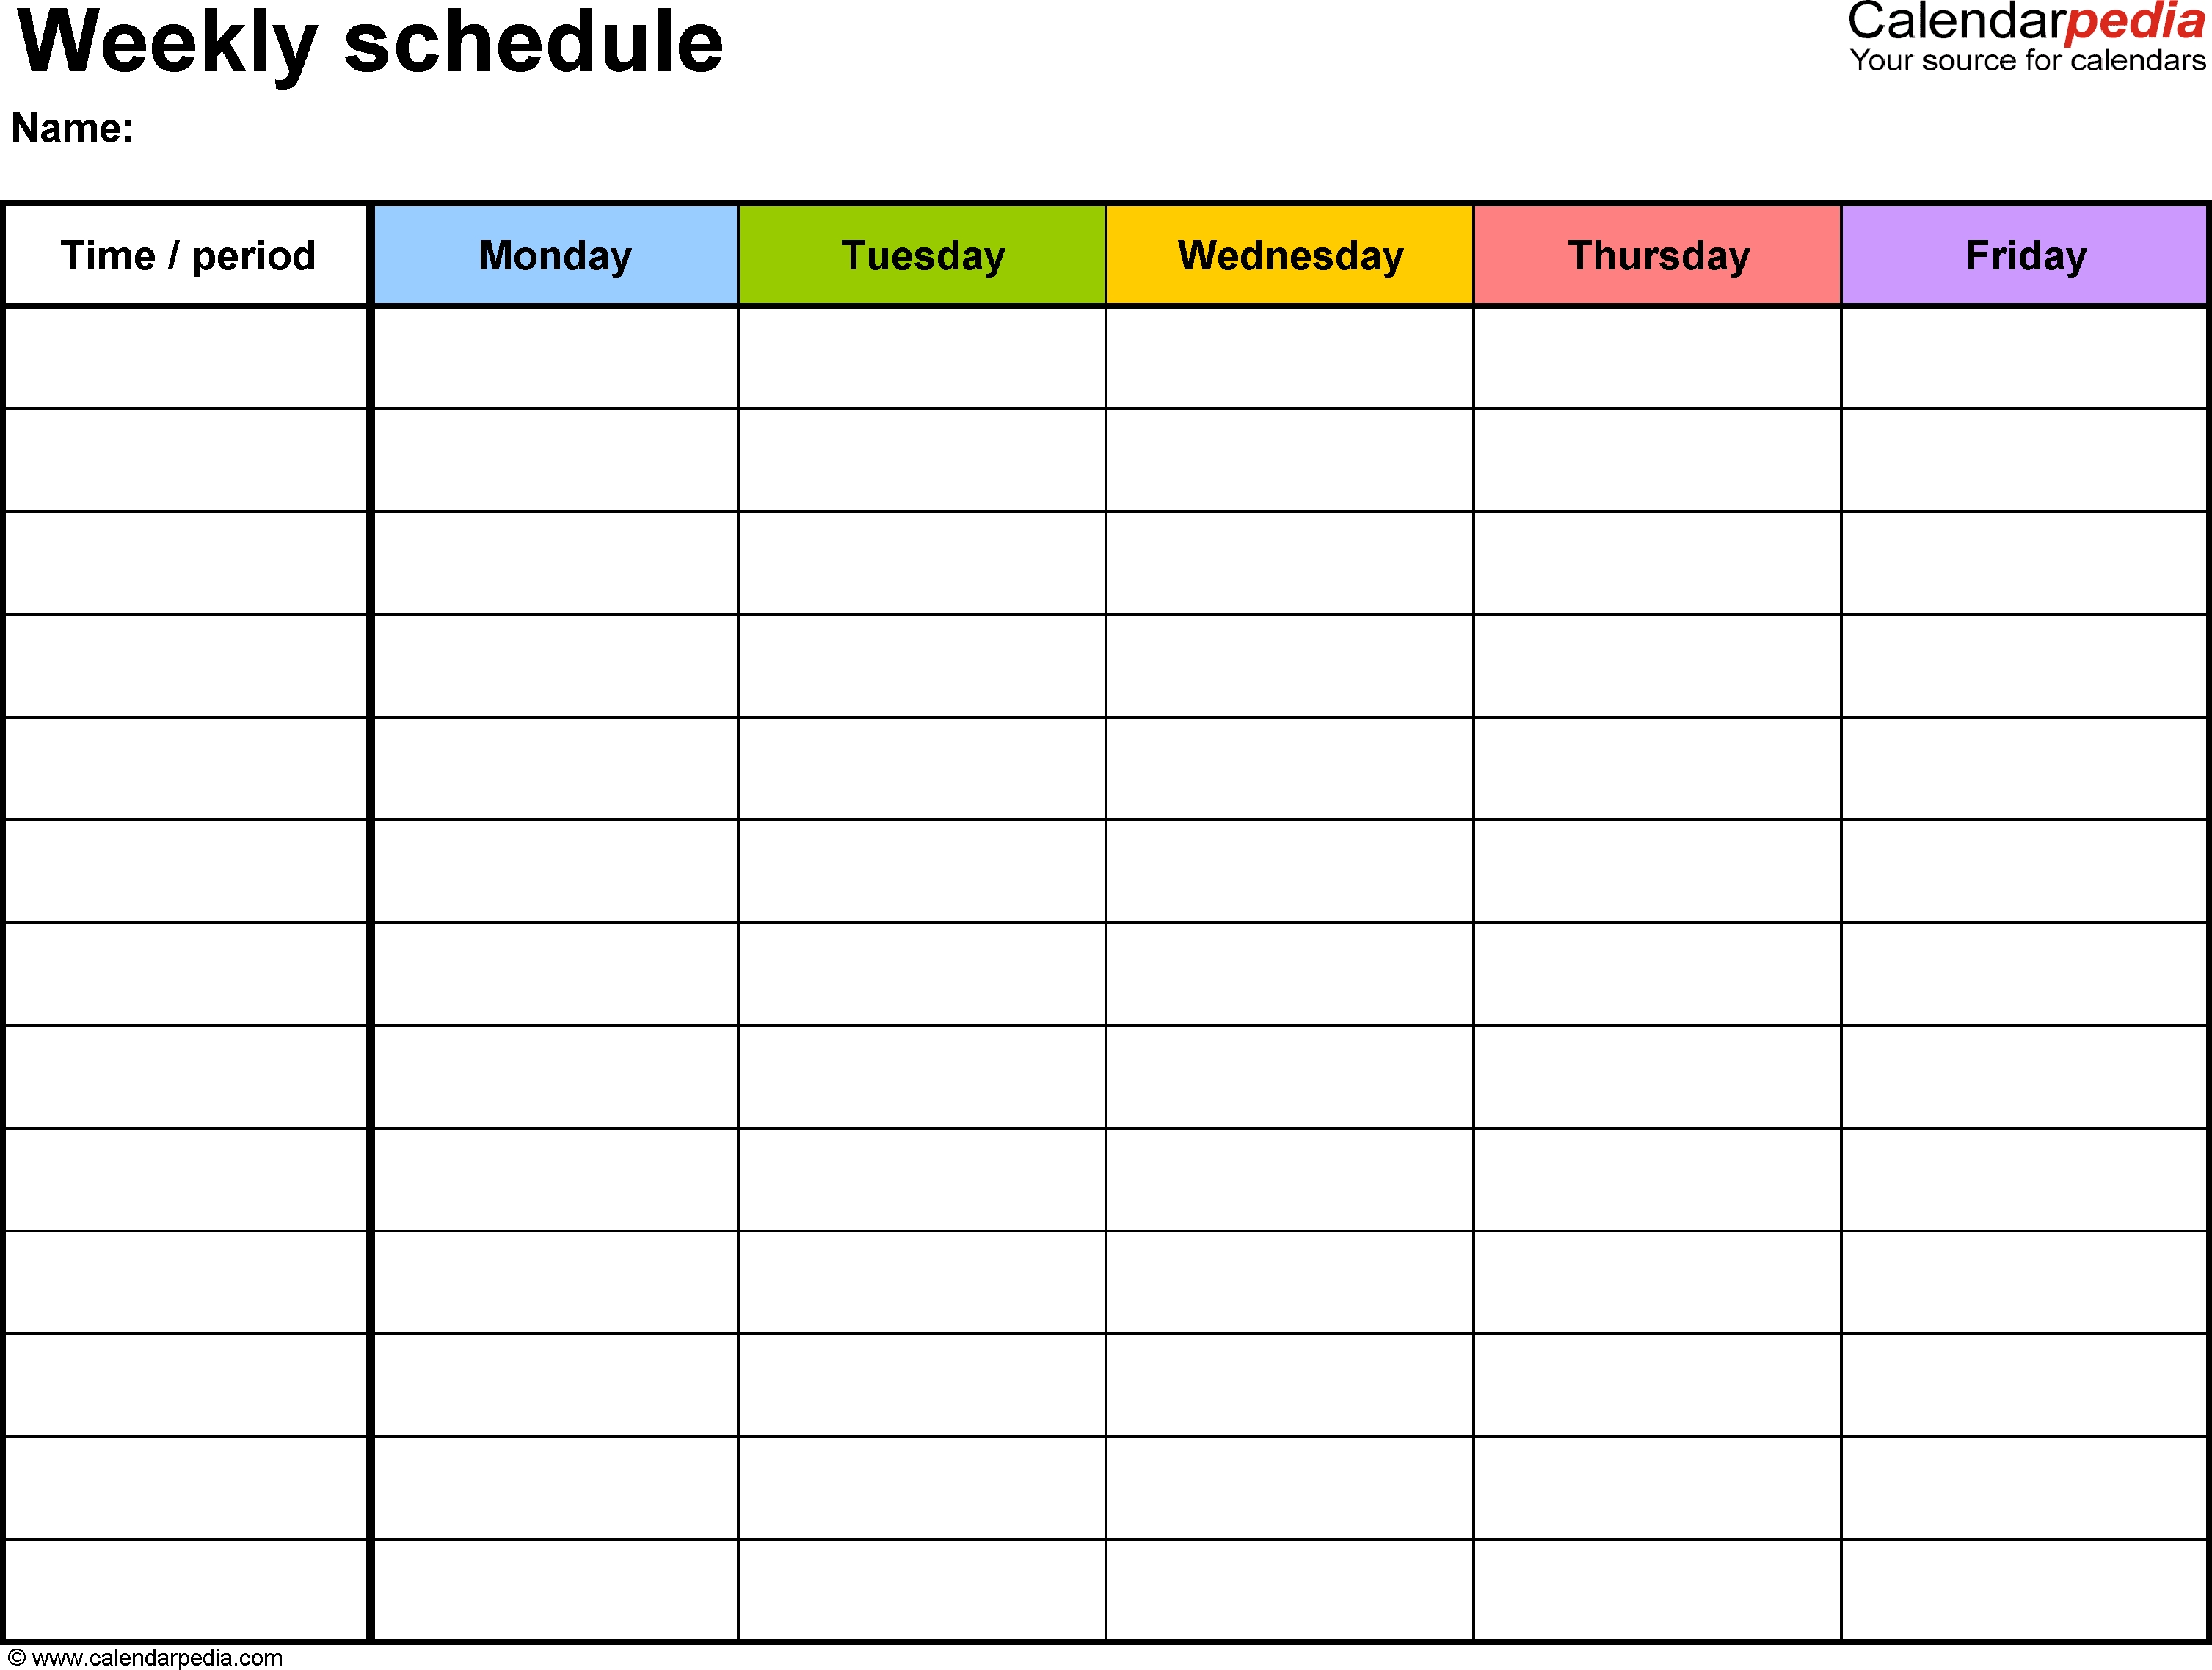 Free Weekly Schedule Templates For Word - 18 Templates-Blank Monday Through Friday Template